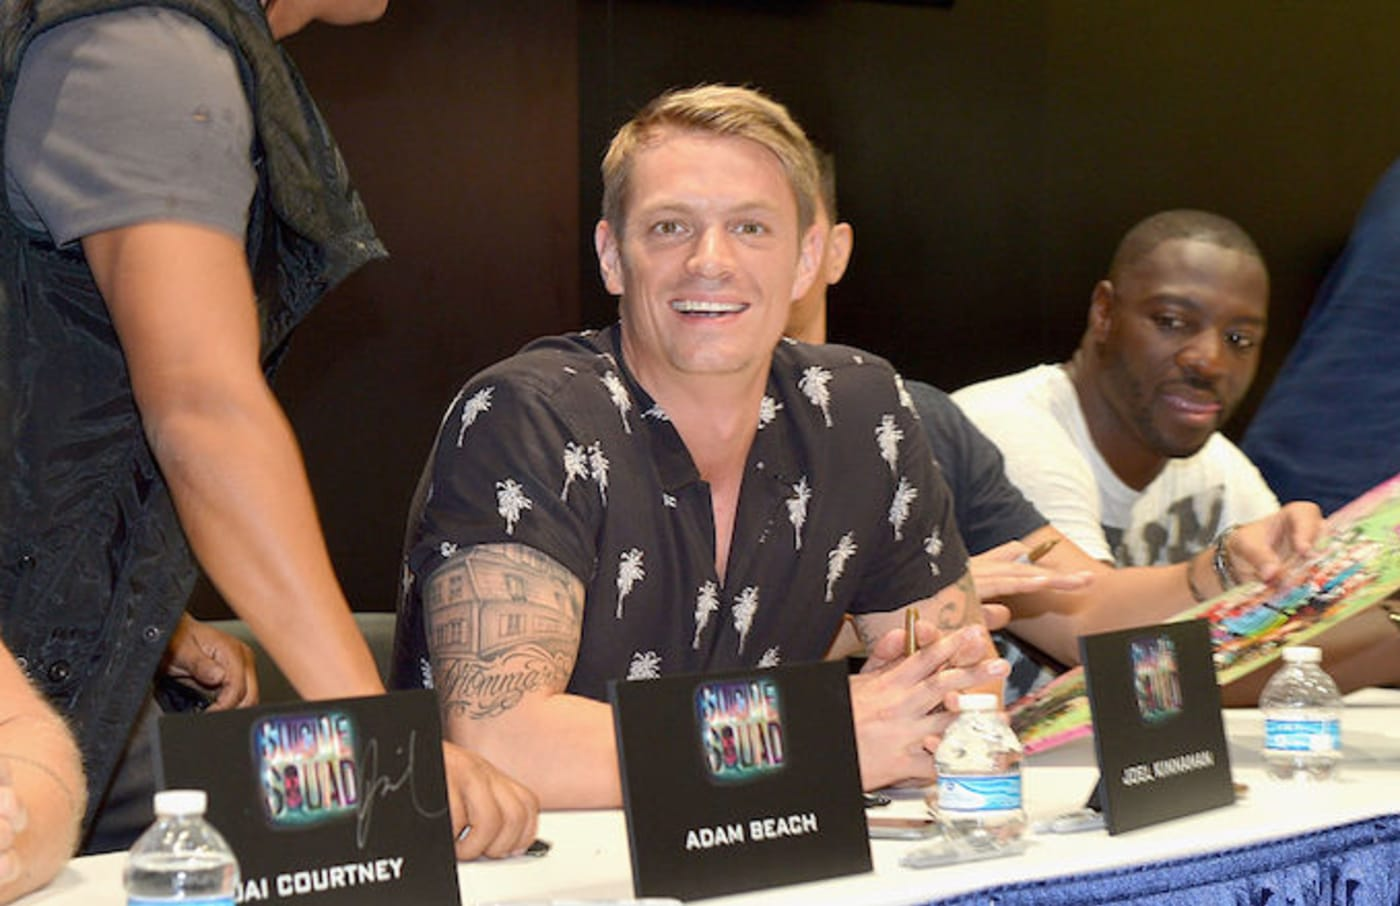 Joel Kinnaman at Comic Con for 'Suicide Squad' in 2016.